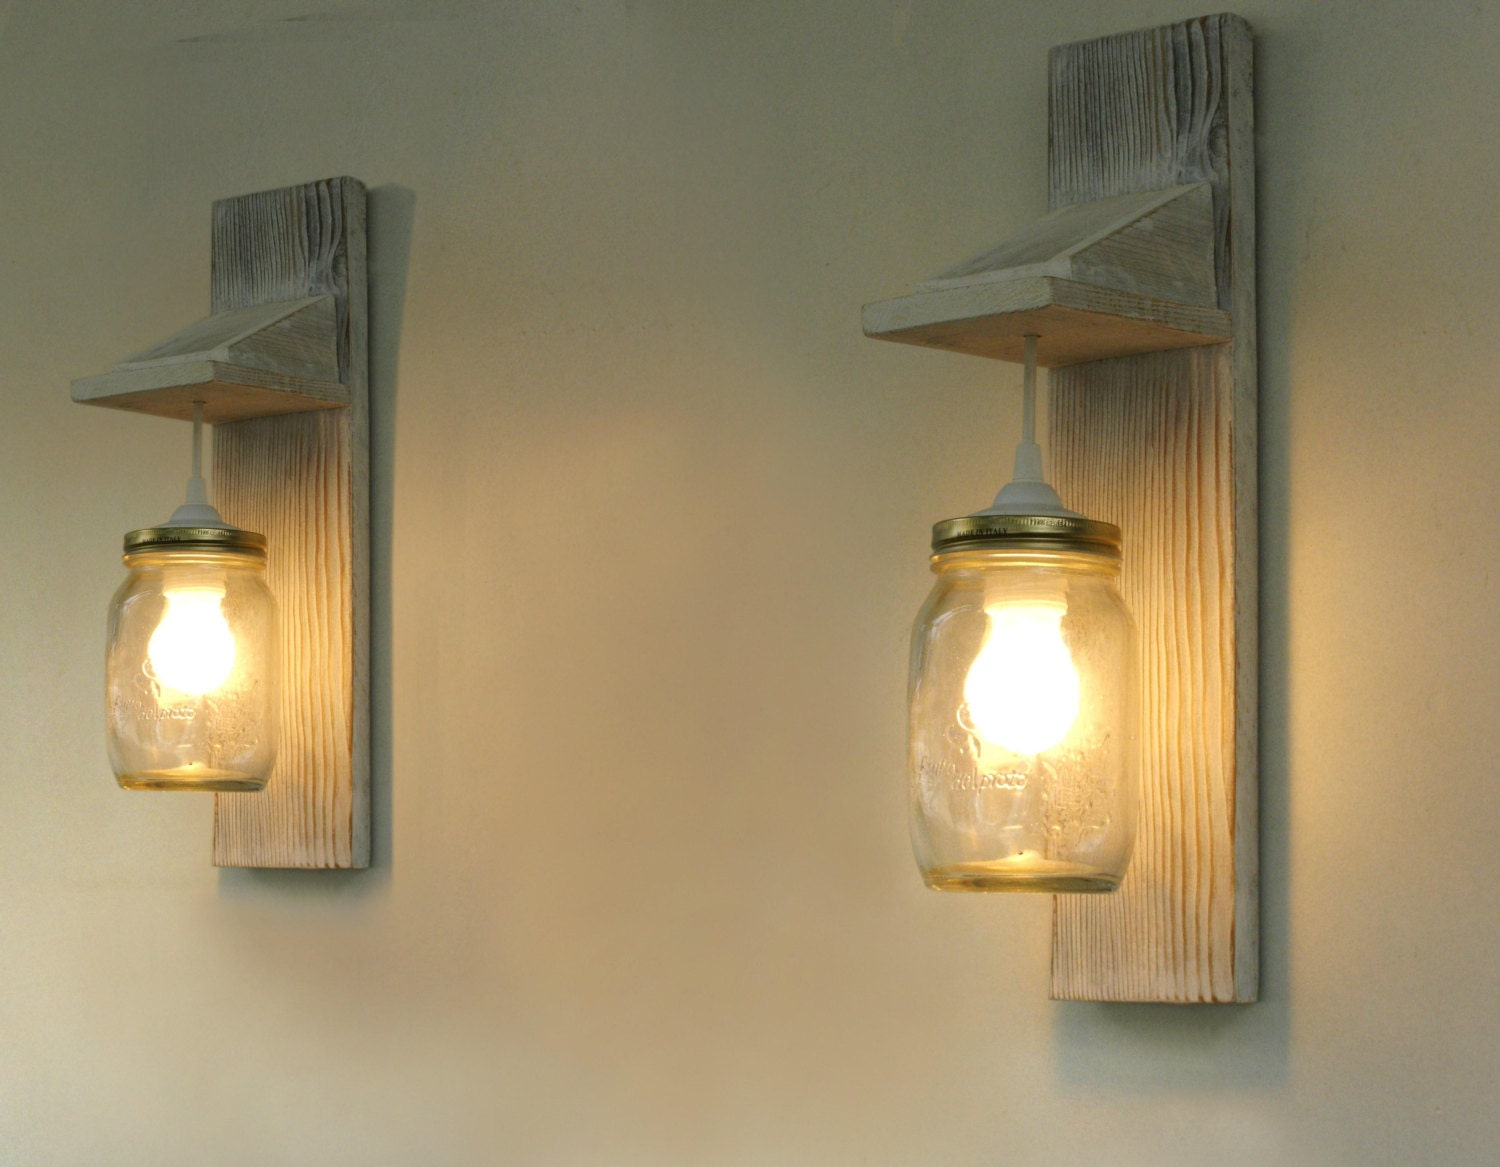 pair of wall lamp reclaimed wood wall sconce mason jar - 🔎zoom